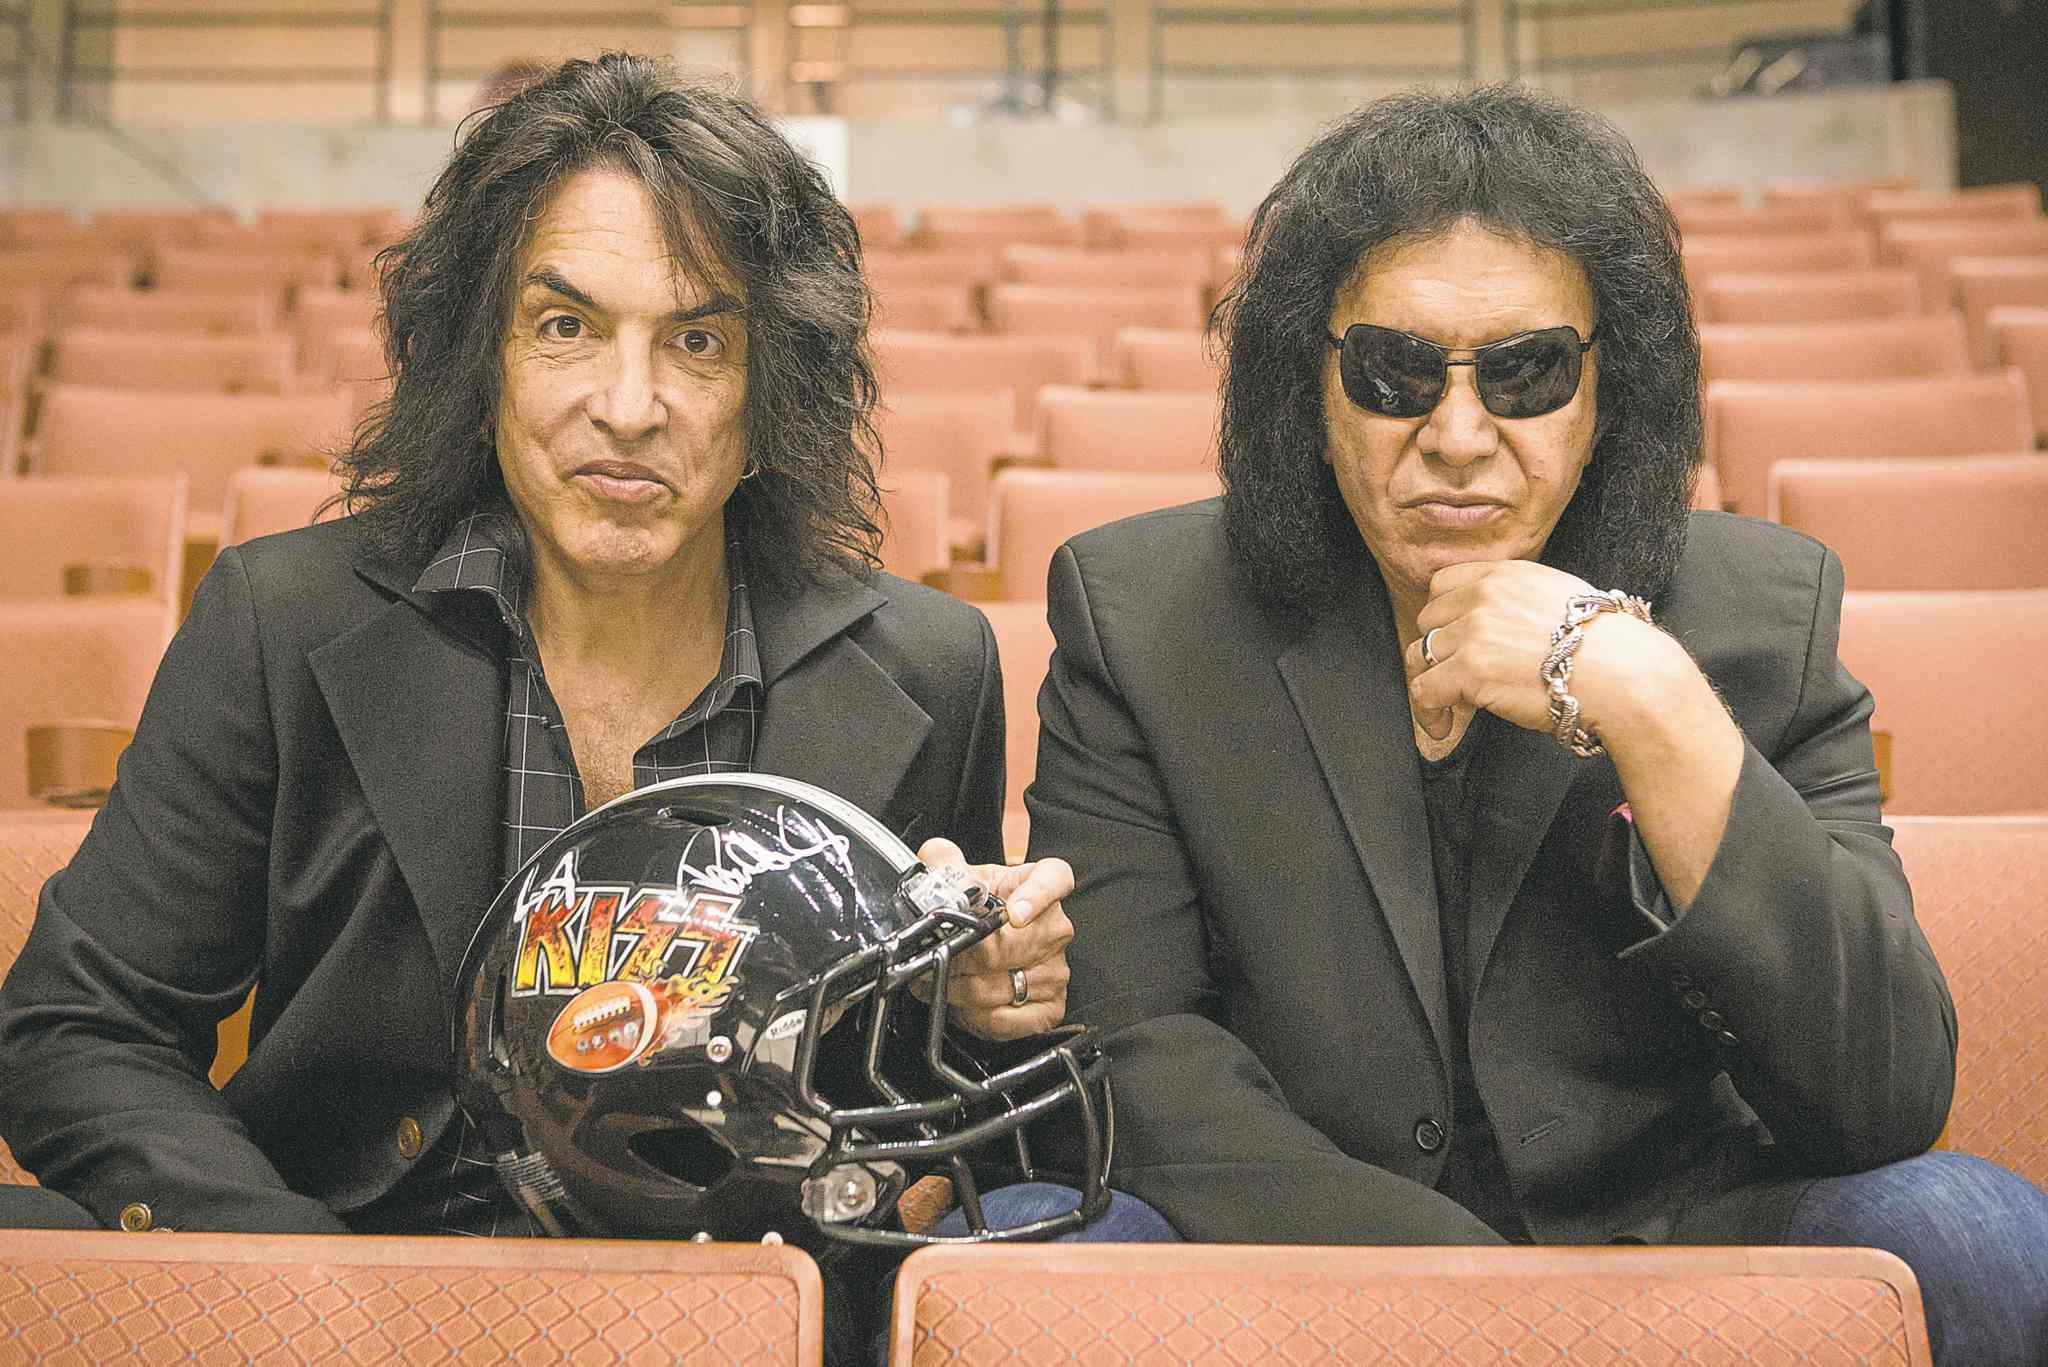 Paul Stanley, left, and Gene Simmons trade guitars for the gridiron on reality series 4th and Loud.